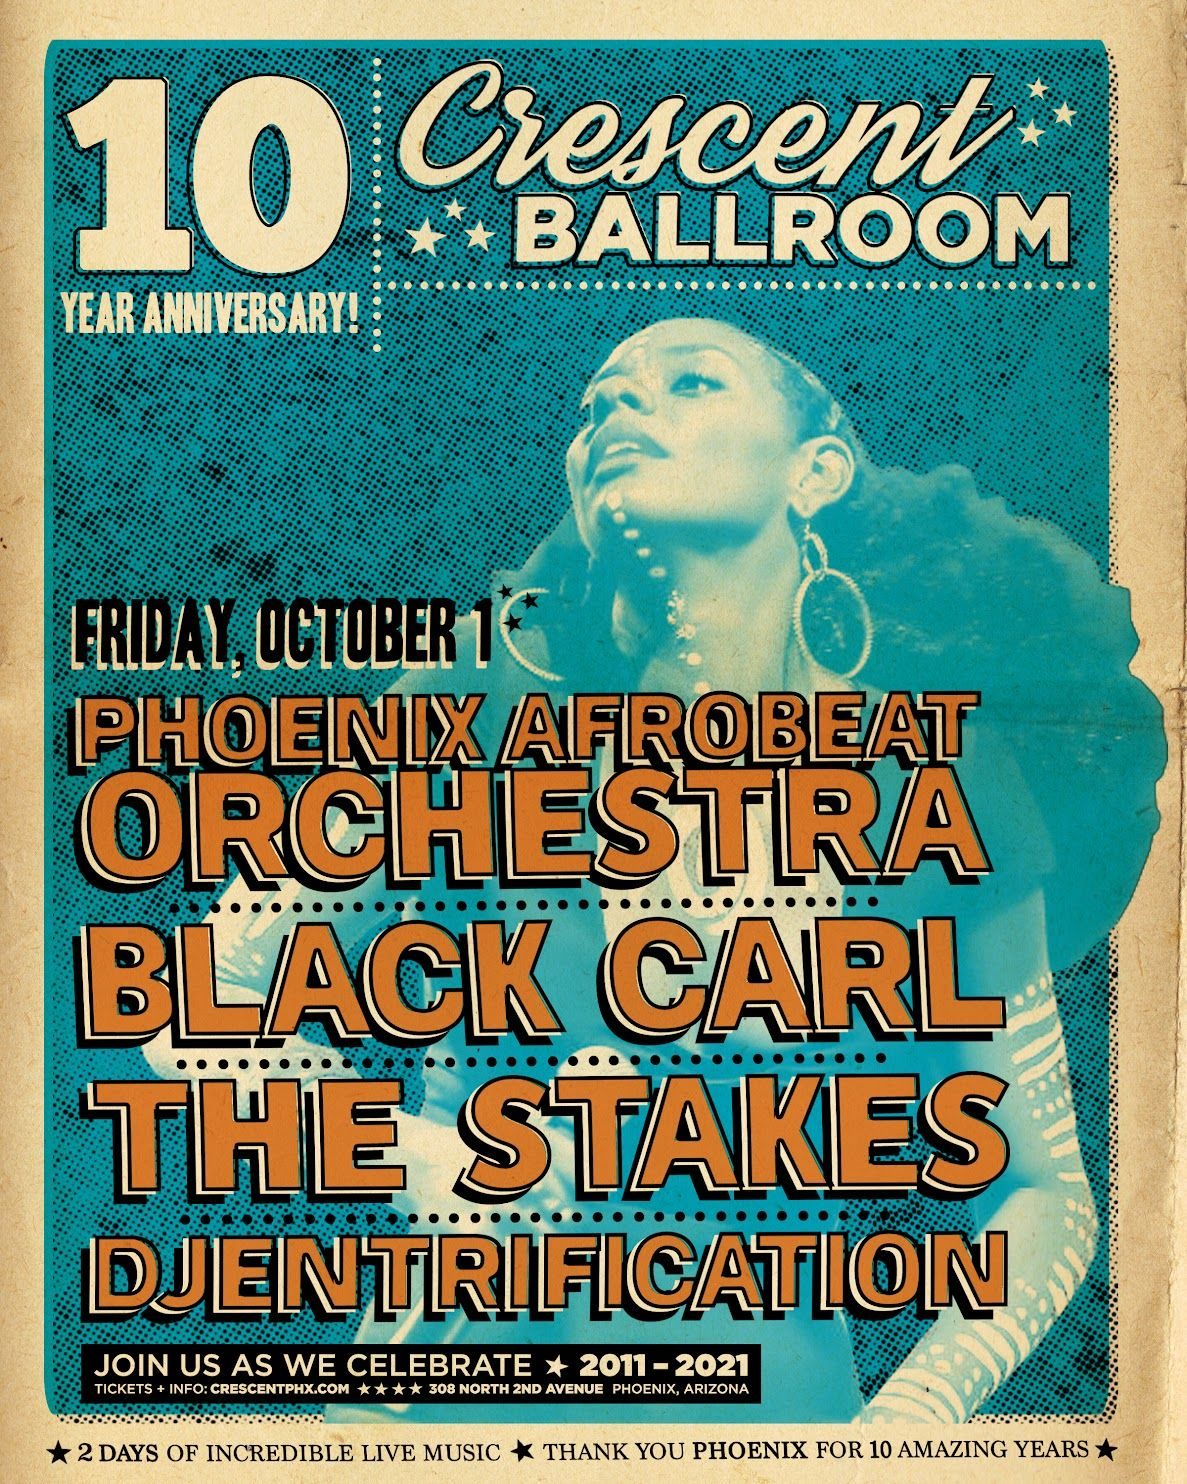 Phoenix Afrobeat Orchestra, Black Carl, The Stakes: